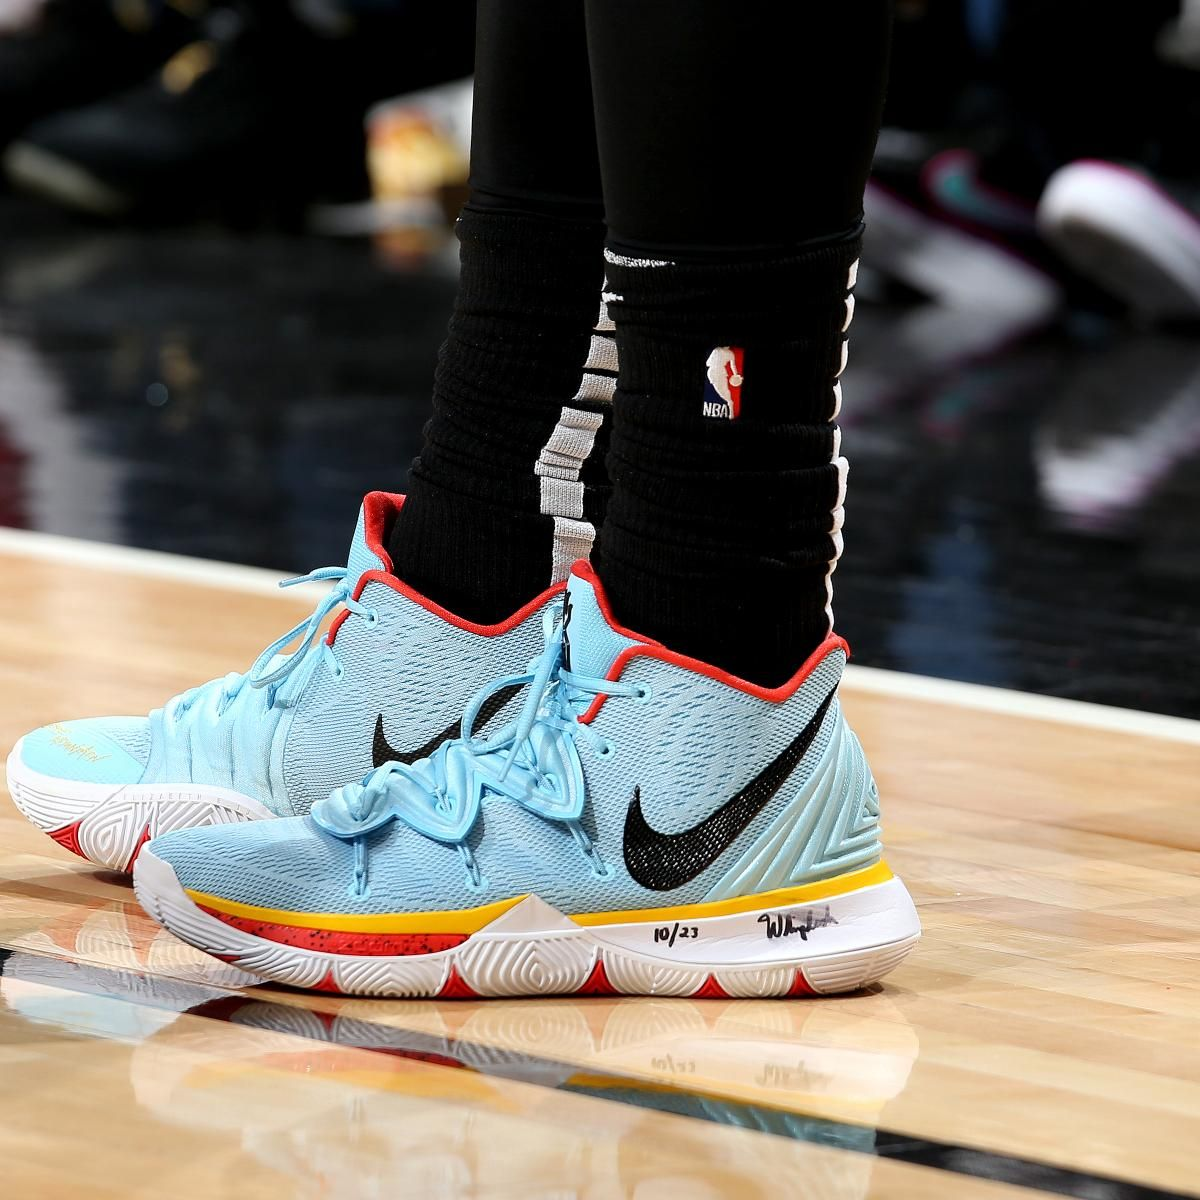 16e64f0e22424 B/R Kicks keeps you up to date with all the latest footwear trends on the  NBA hardwood. Here's a look at the cleanest looks from Saturday's action.